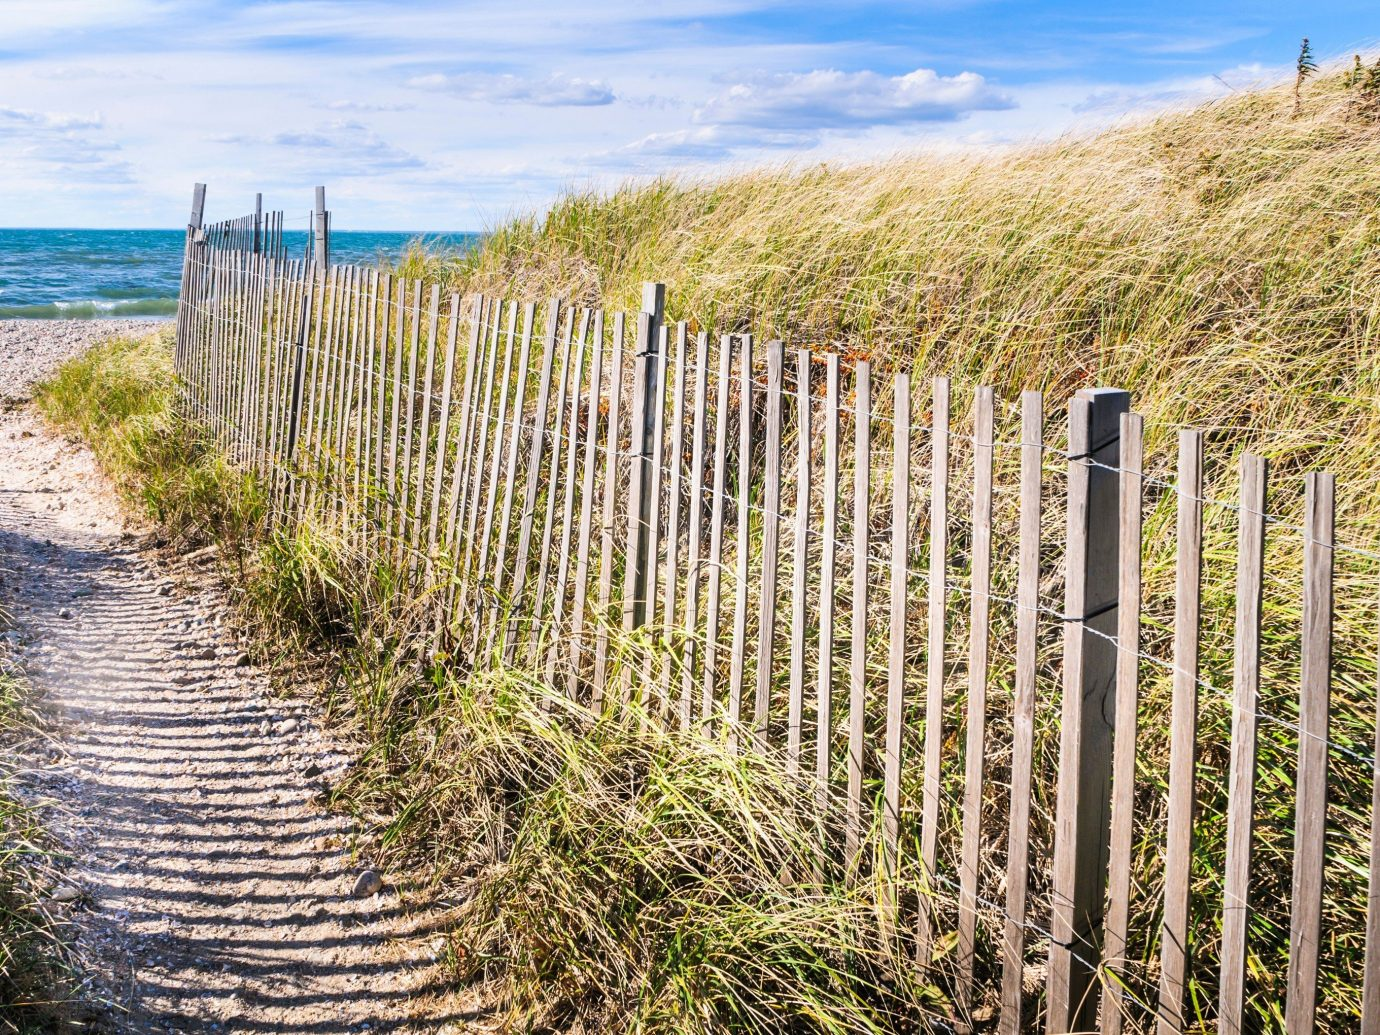 Trip Ideas Fence sky outdoor grass habitat agriculture natural environment ecosystem tree walkway grass family field outdoor structure wetland home fencing Coast shrub Vineyard overlooking